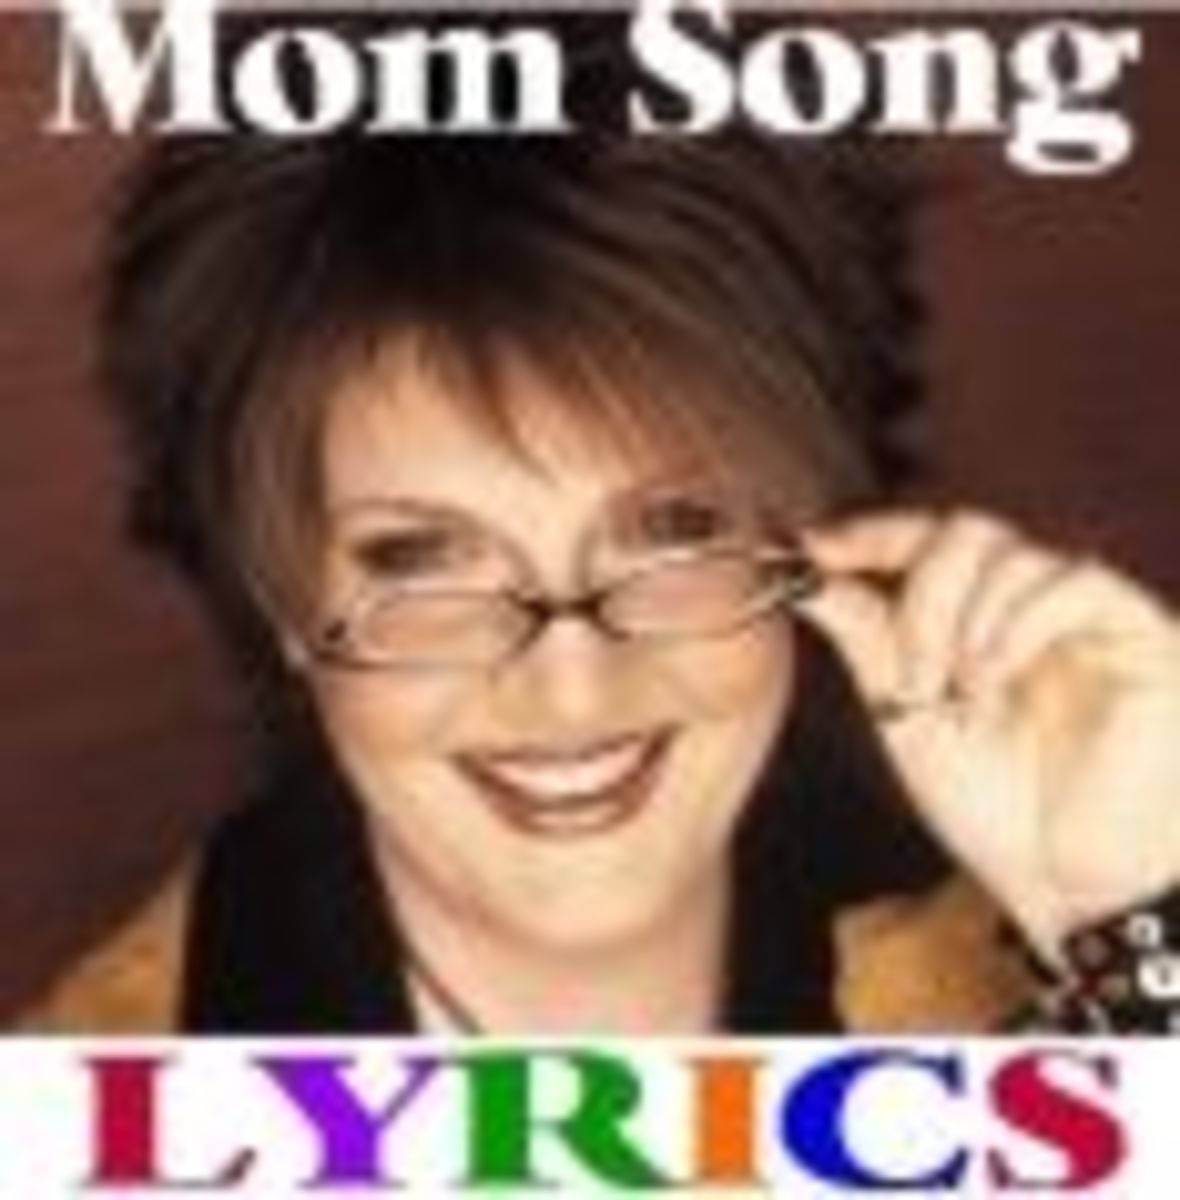 Anita Renfroe: Lyrics to her YouTube William Tell Mom song!